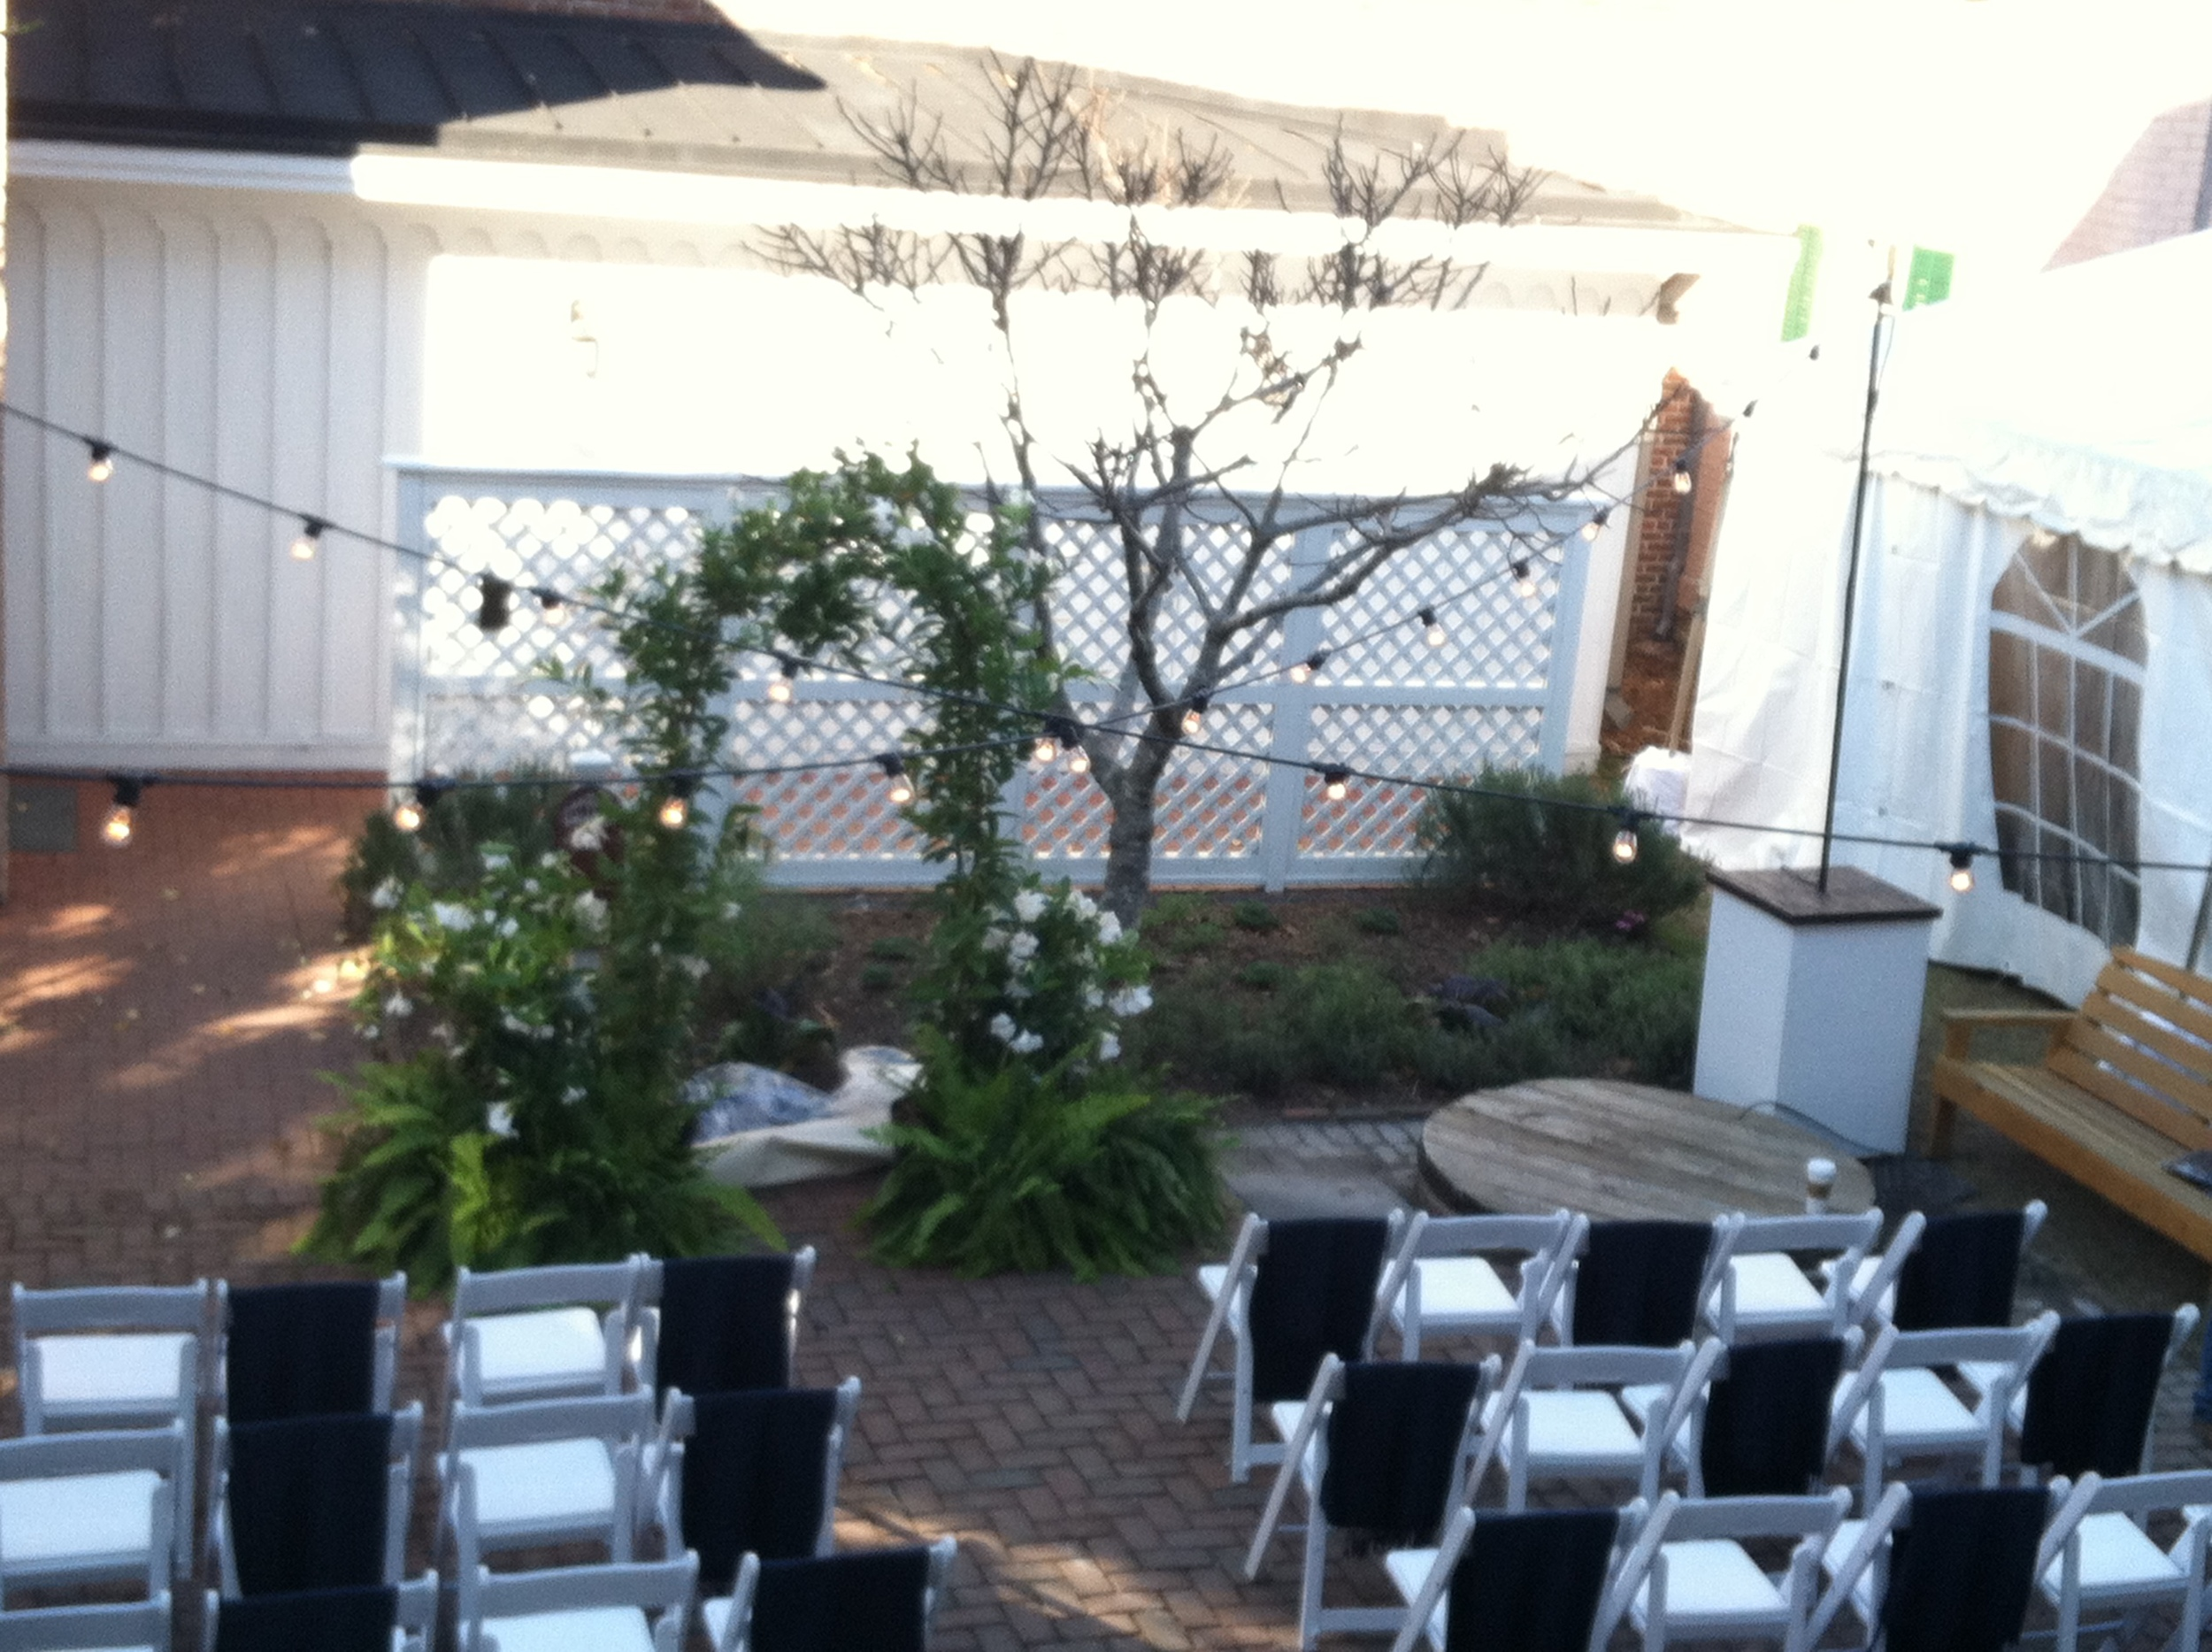 Edison Lighting hung over patio ceremony.